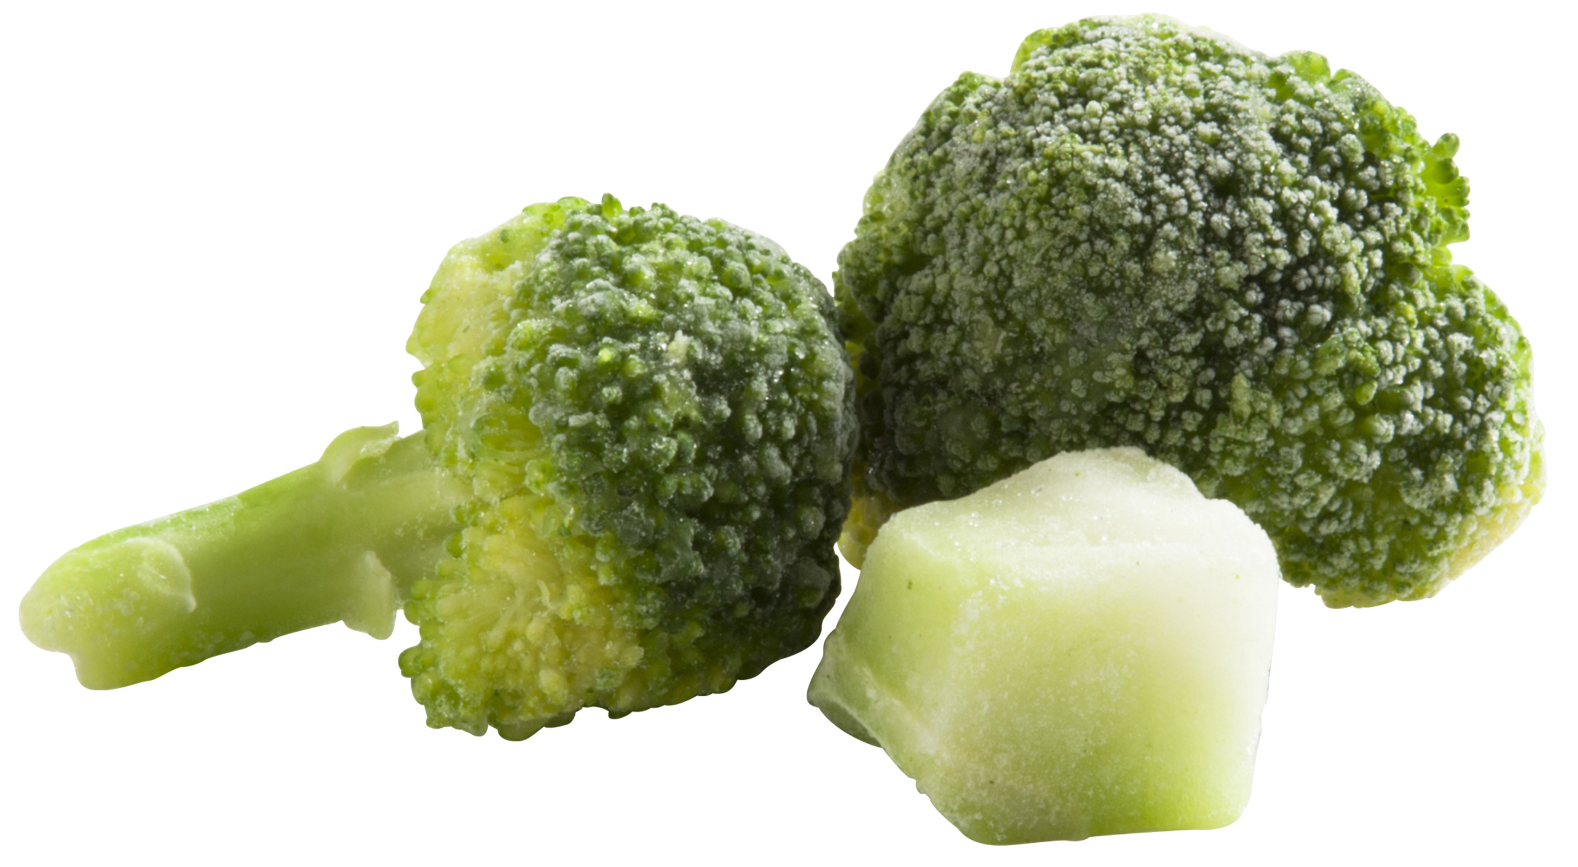 https://www.lavifood.com/en/products/blanching/broccoli